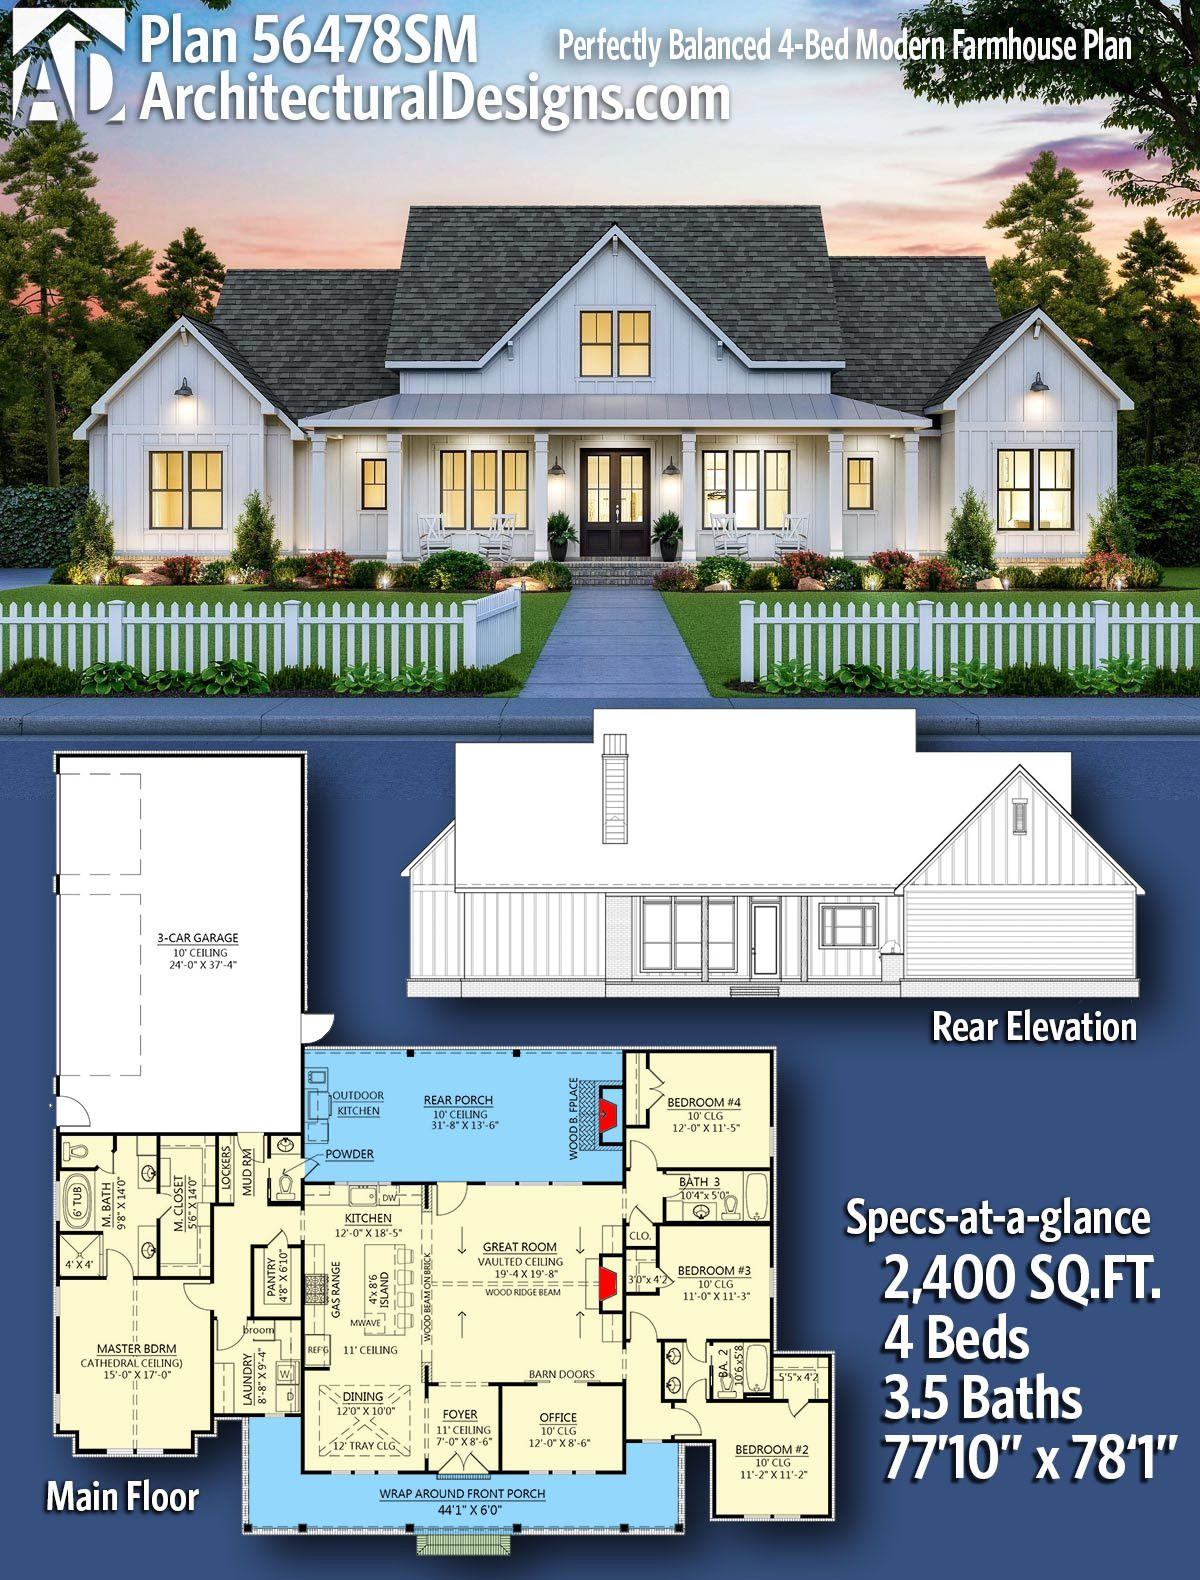 Plan 56478sm Perfectly Balanced 4 Bed Modern Farmhouse Plan In 2020 House Plans Farmhouse Modern Farmhouse Plans Farmhouse Floor Plans